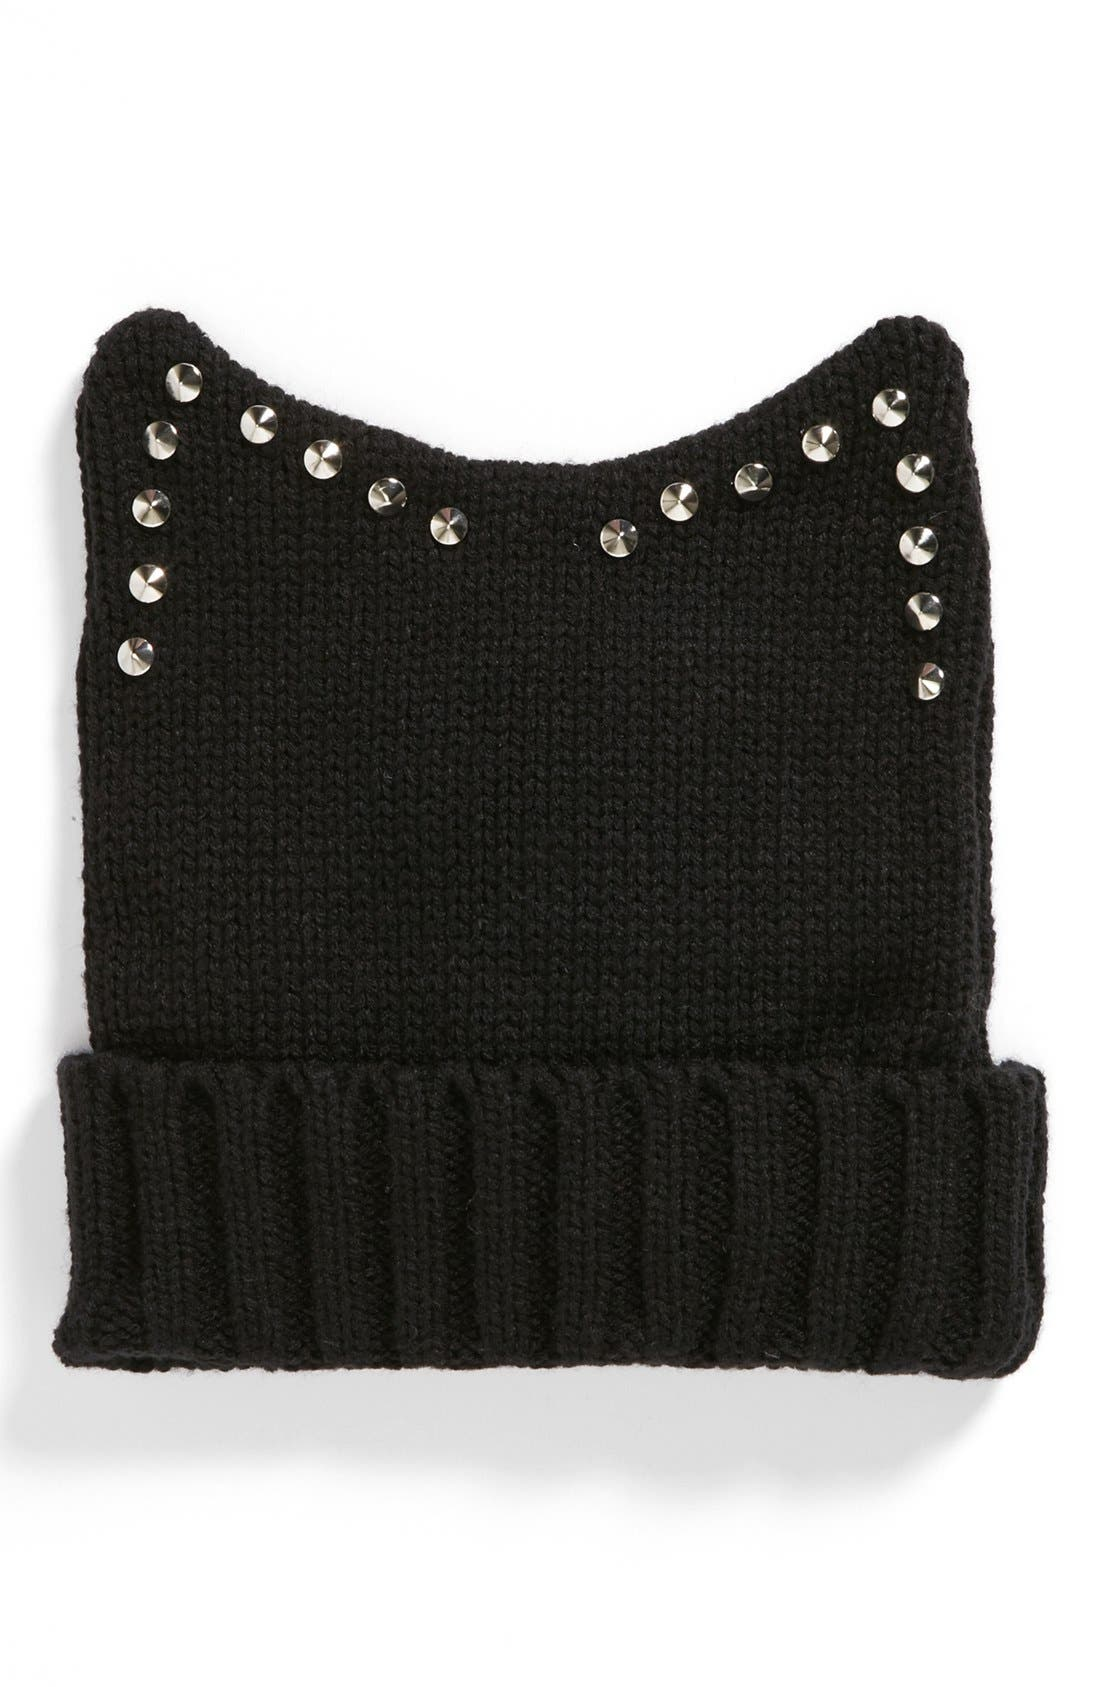 Alternate Image 1 Selected - The Accessory Collective Cat Ears Knit Beanie (Girls)